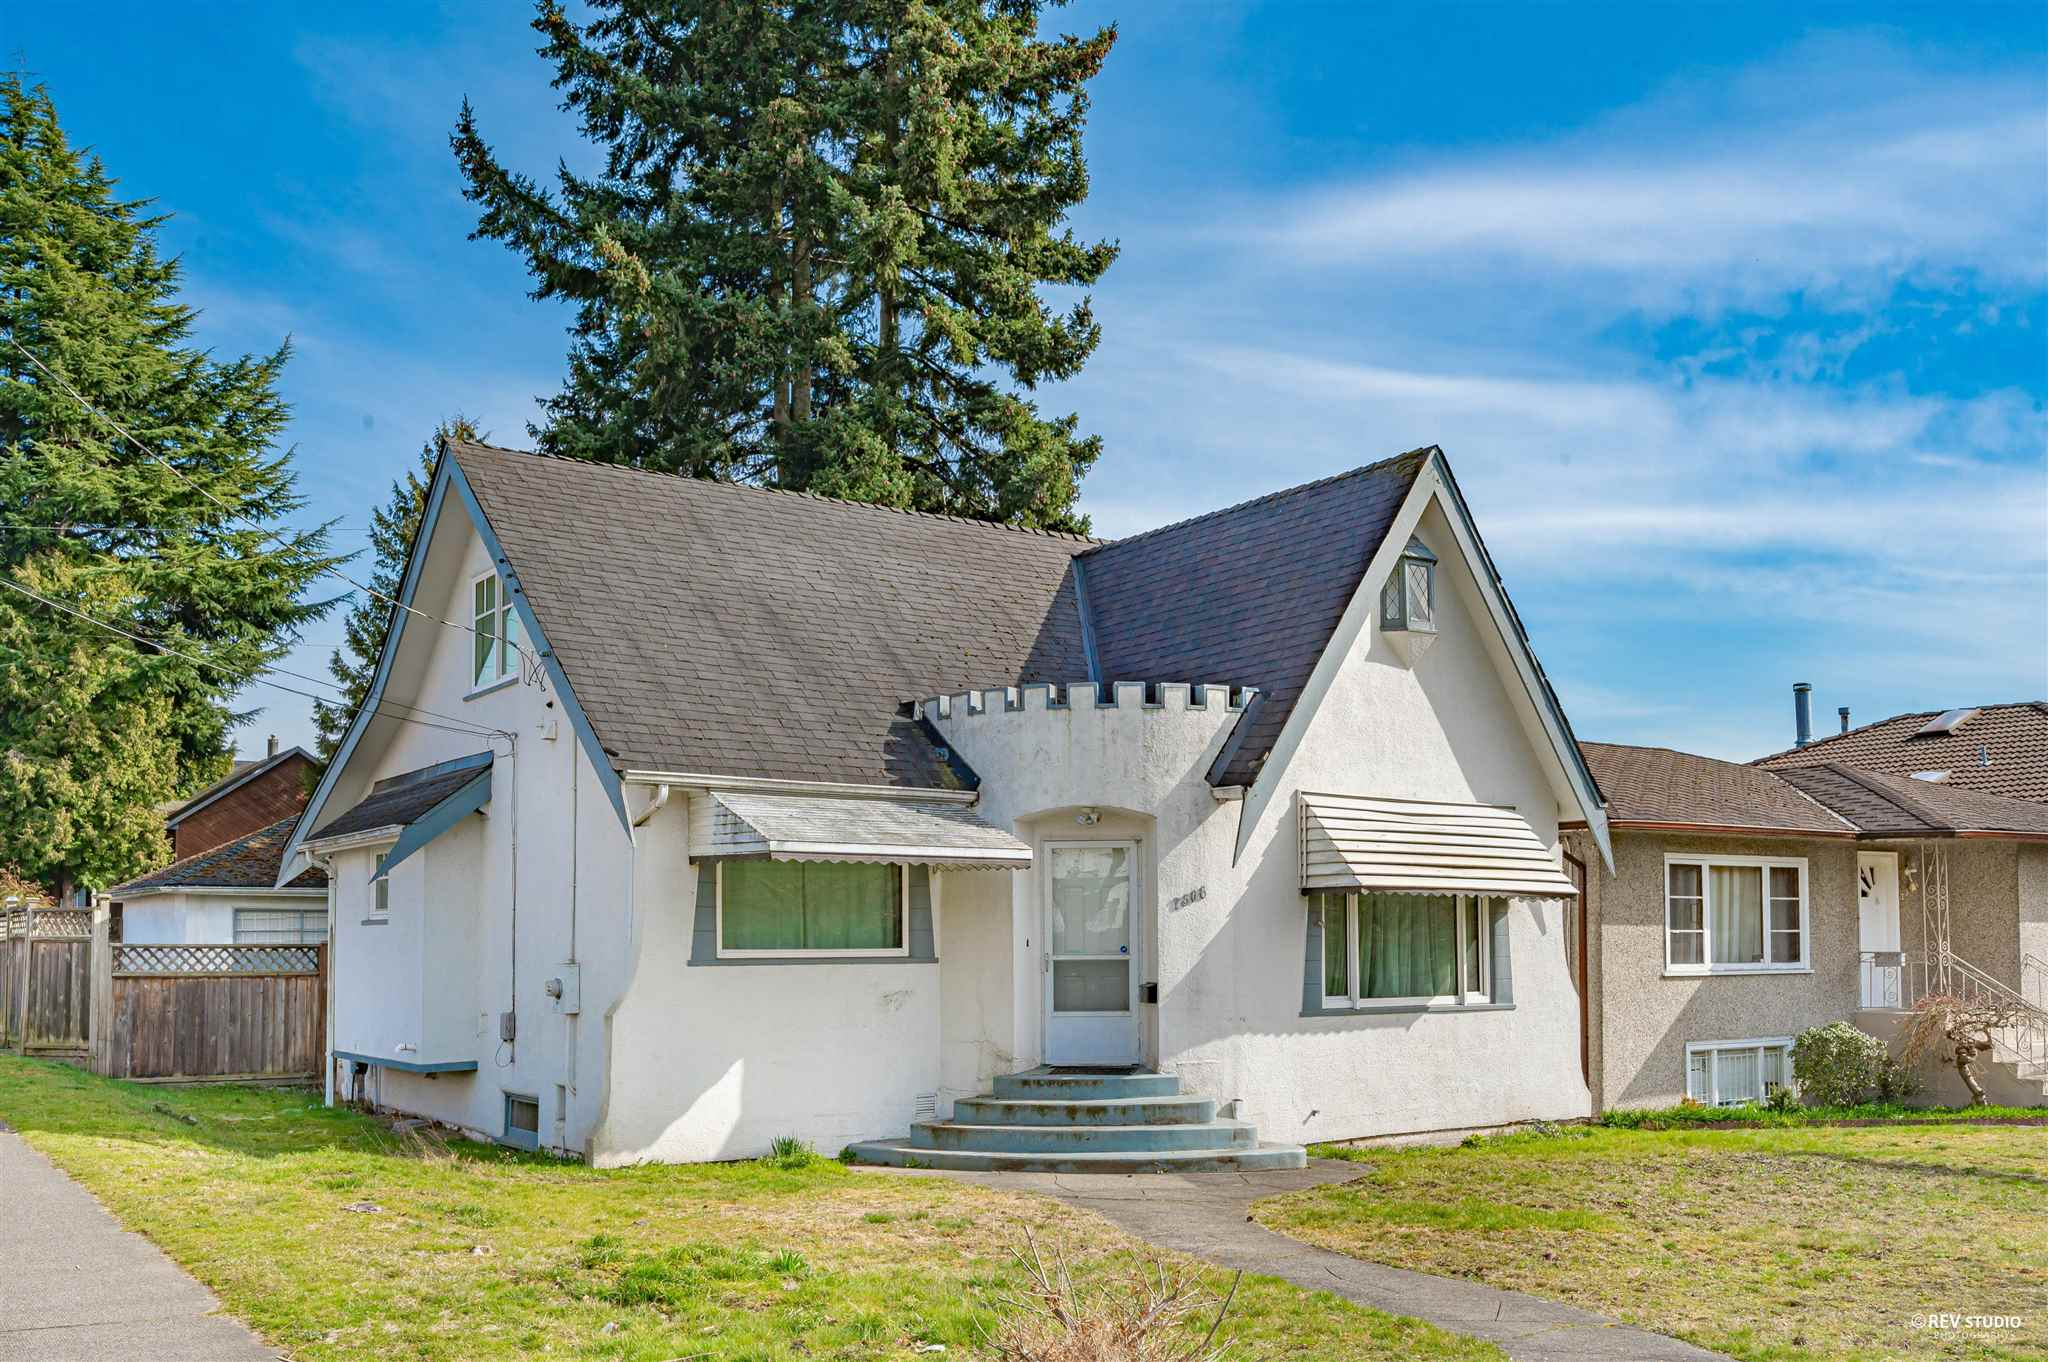 7506 PRINCE EDWARD STREET - South Vancouver House/Single Family for sale, 3 Bedrooms (R2603118) - #1